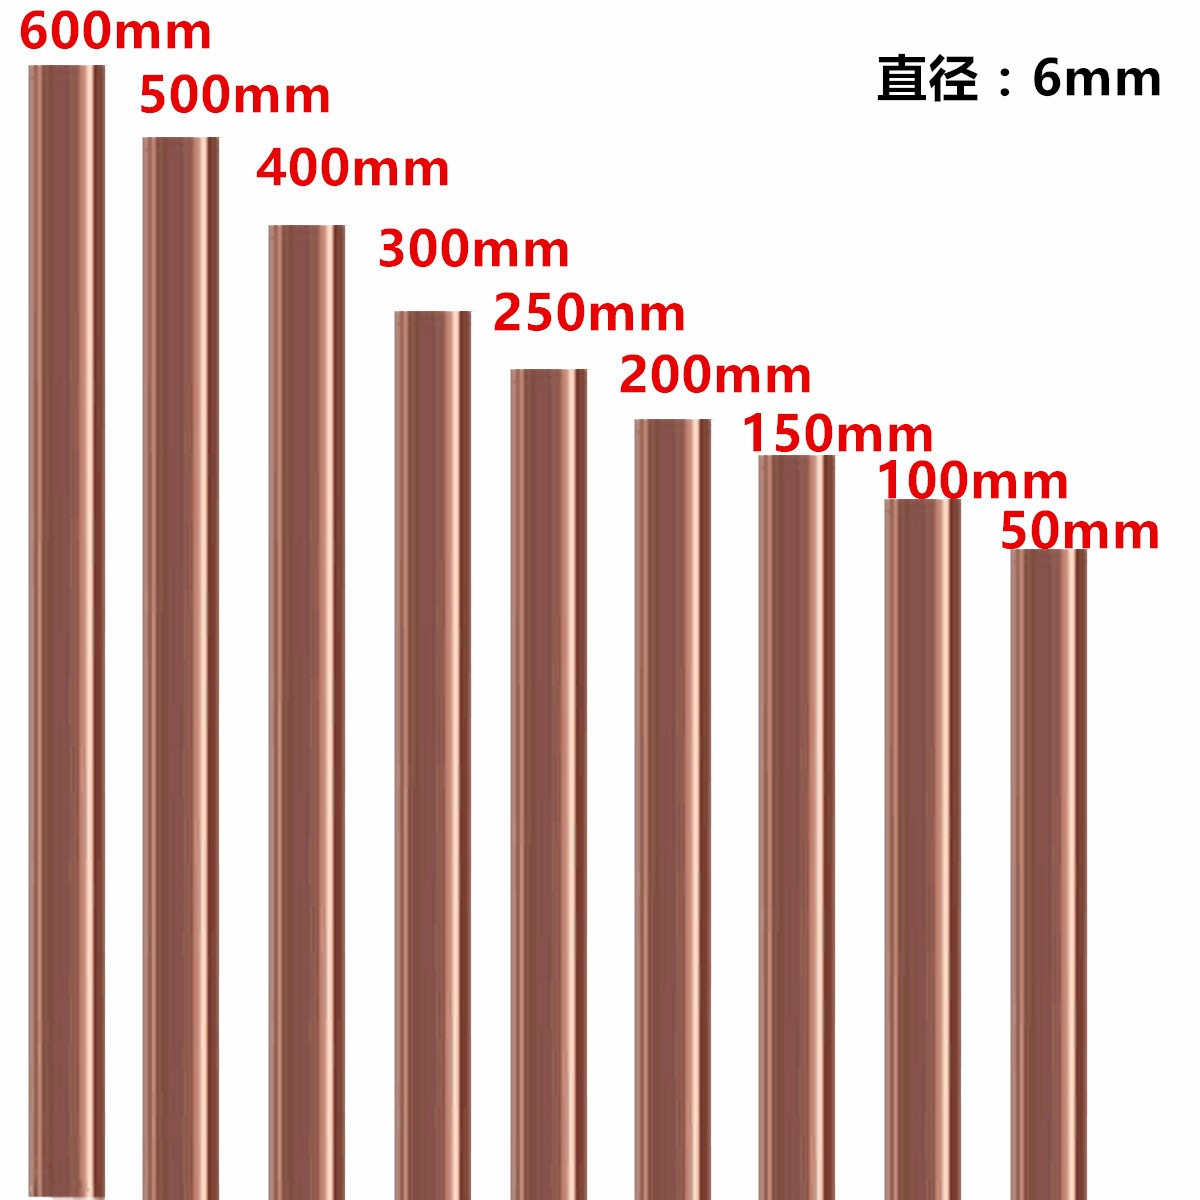 6mm Diameter 50-600mm Copper Round Bar Rod For Milling Welding Metalworking